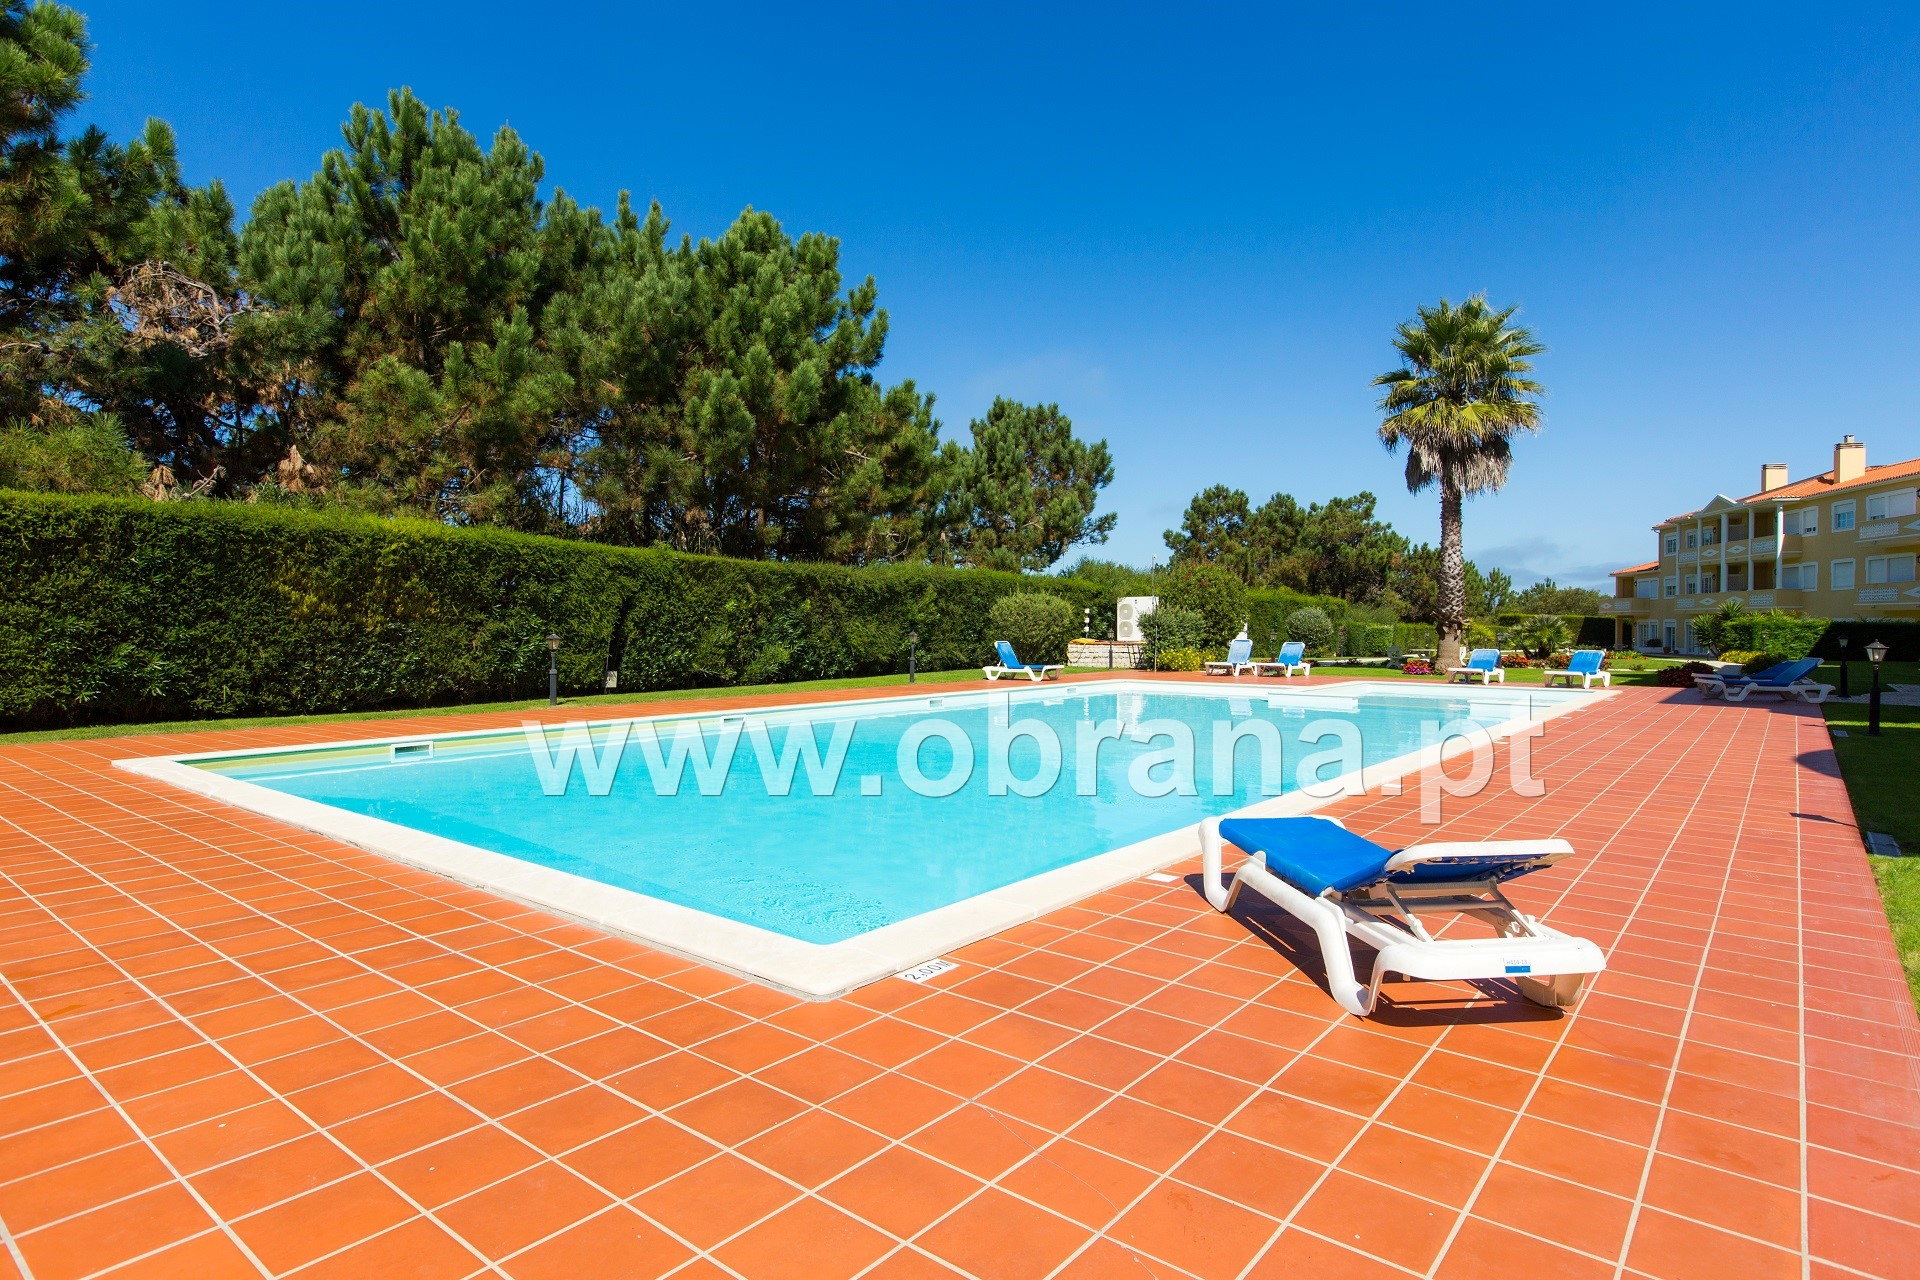 PRAIA DEL REY GOLF BEACH RESORT HOLIDAY APARTMENT | 3 BEDROOMS, SLEEPS 6 | POOL|WIFI | LONG TERM RENTAL POSSIBLE |